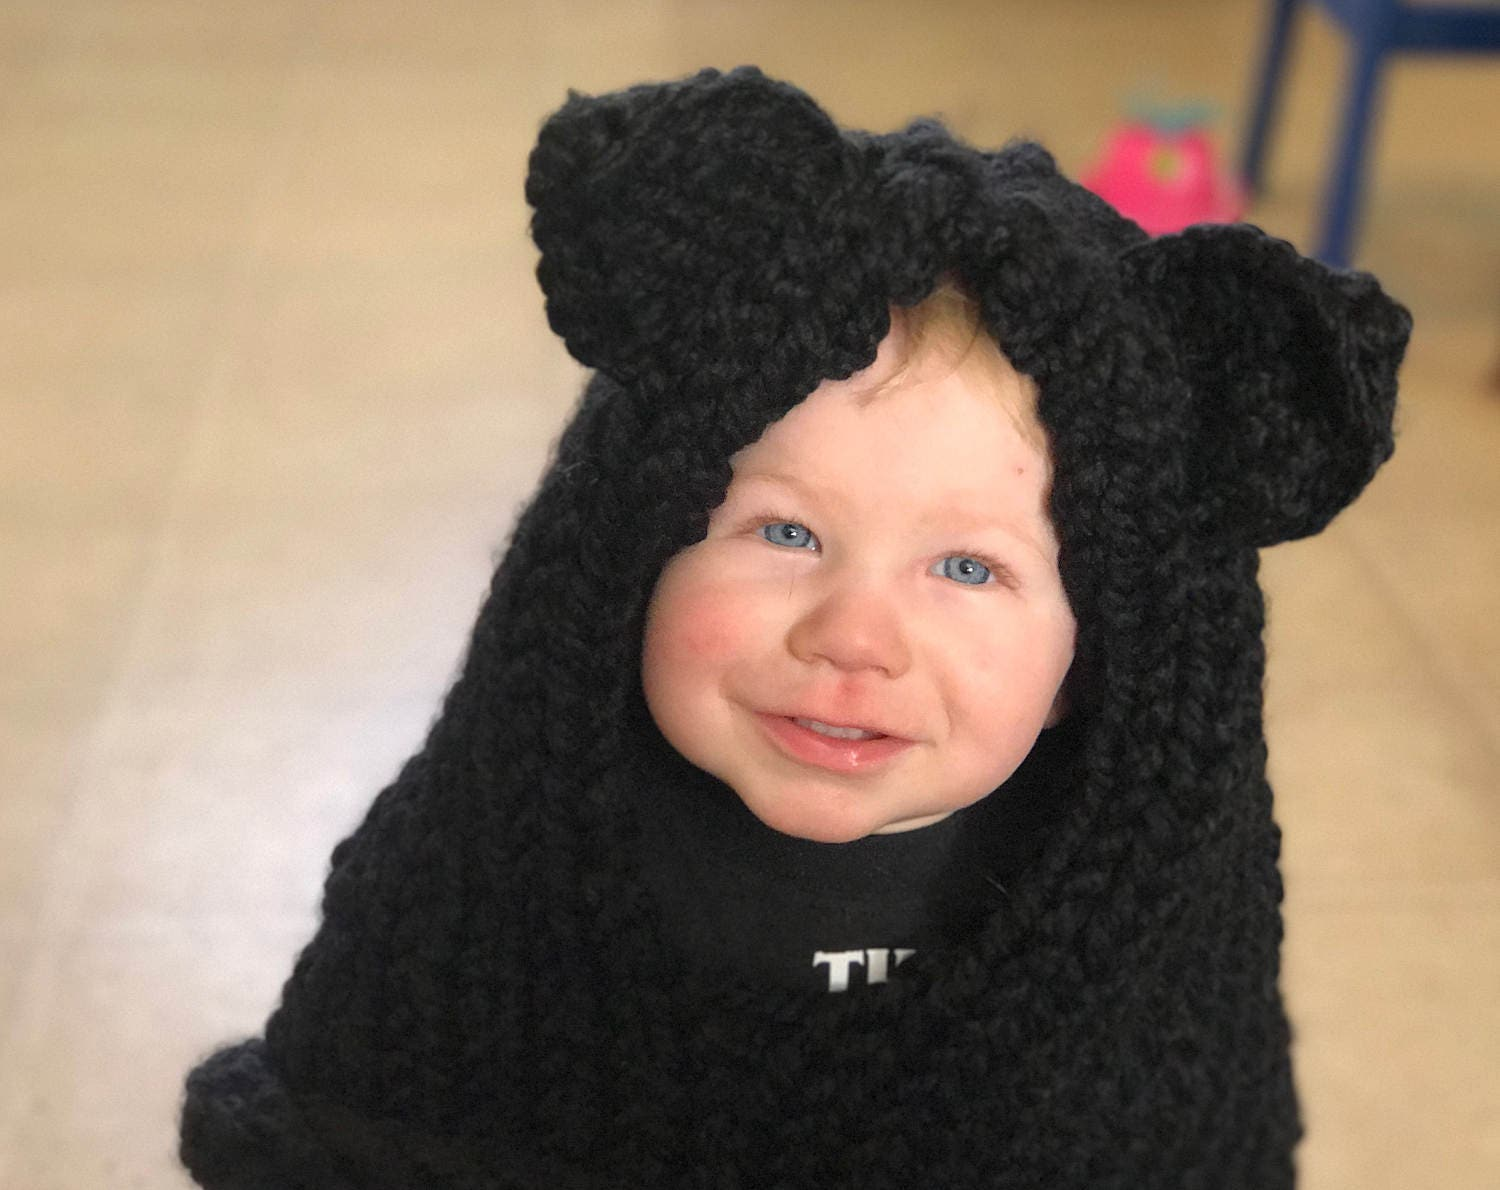 Knit cat hood for kids or adults